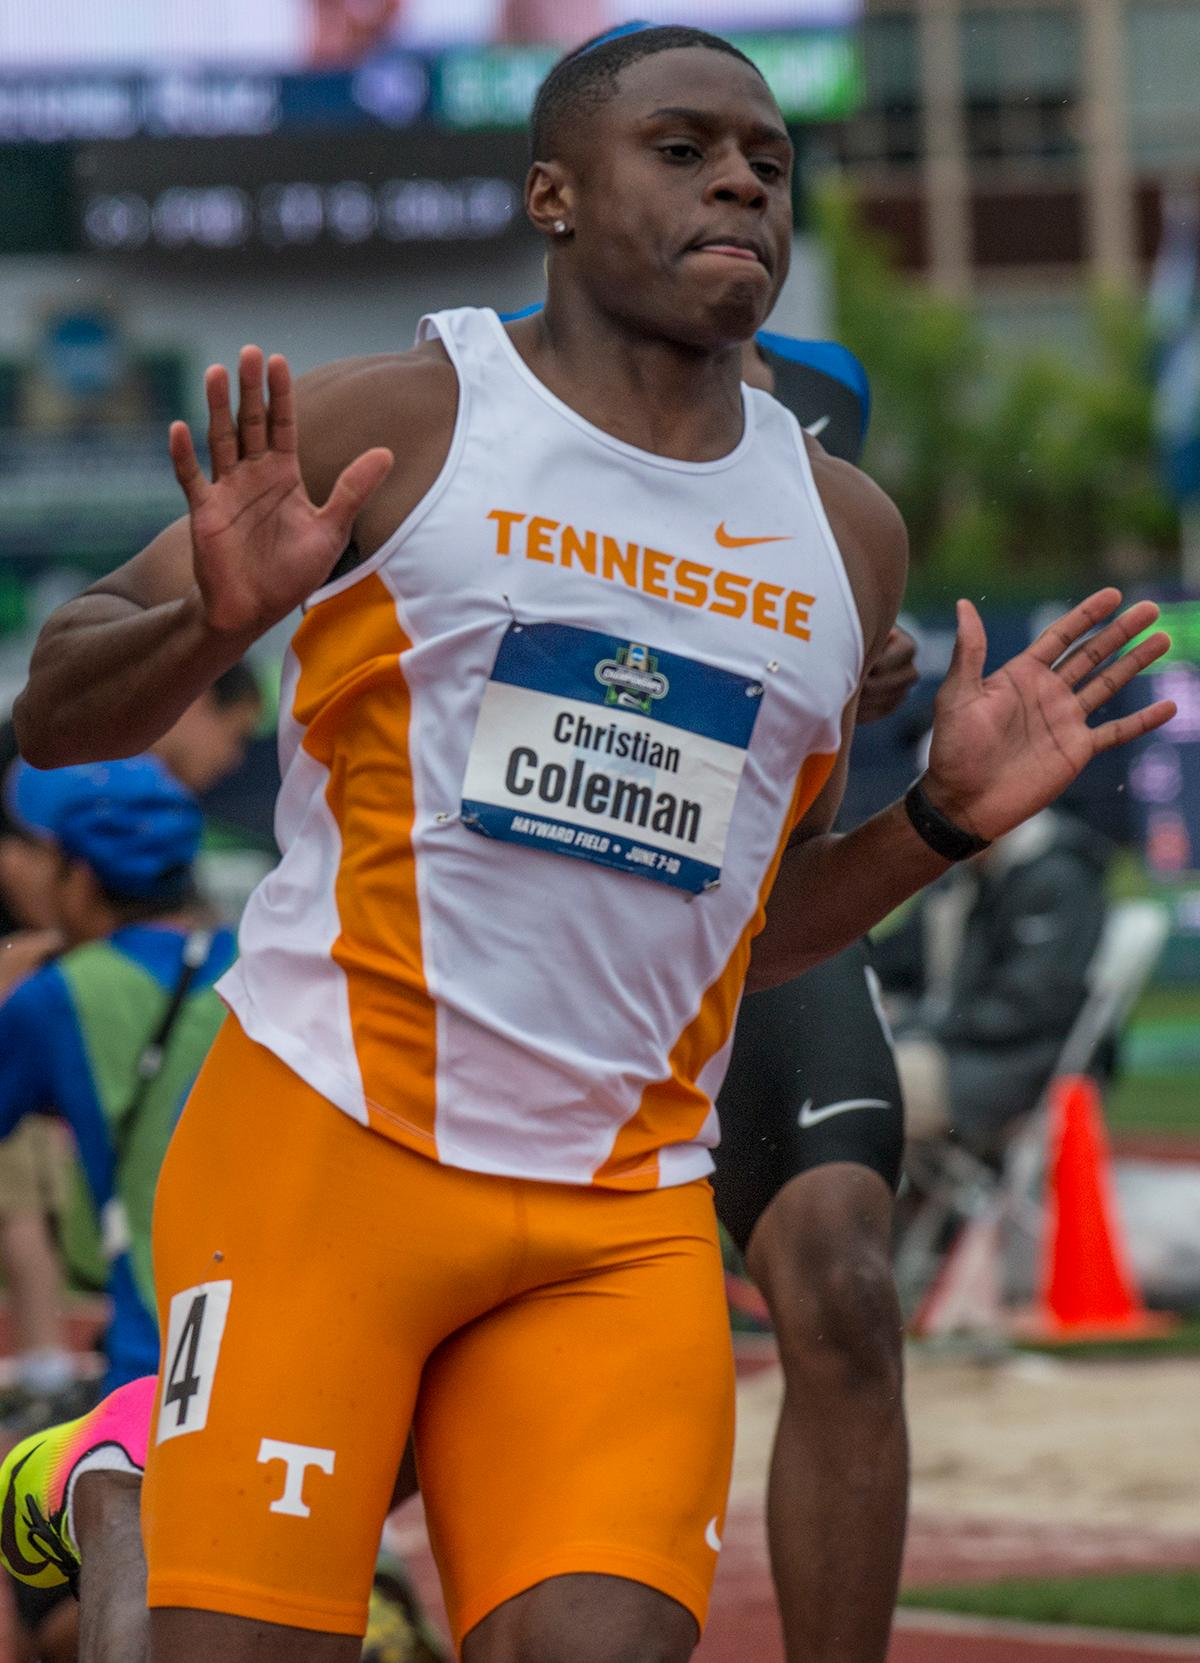 Christian Coleman, Tennessee, wins the 100m with at time of 9.82 in the semis on day one of the NCAA Division I Championships at Hayward Field. Photo by Rhianna Gelhart, Oregon News Lab